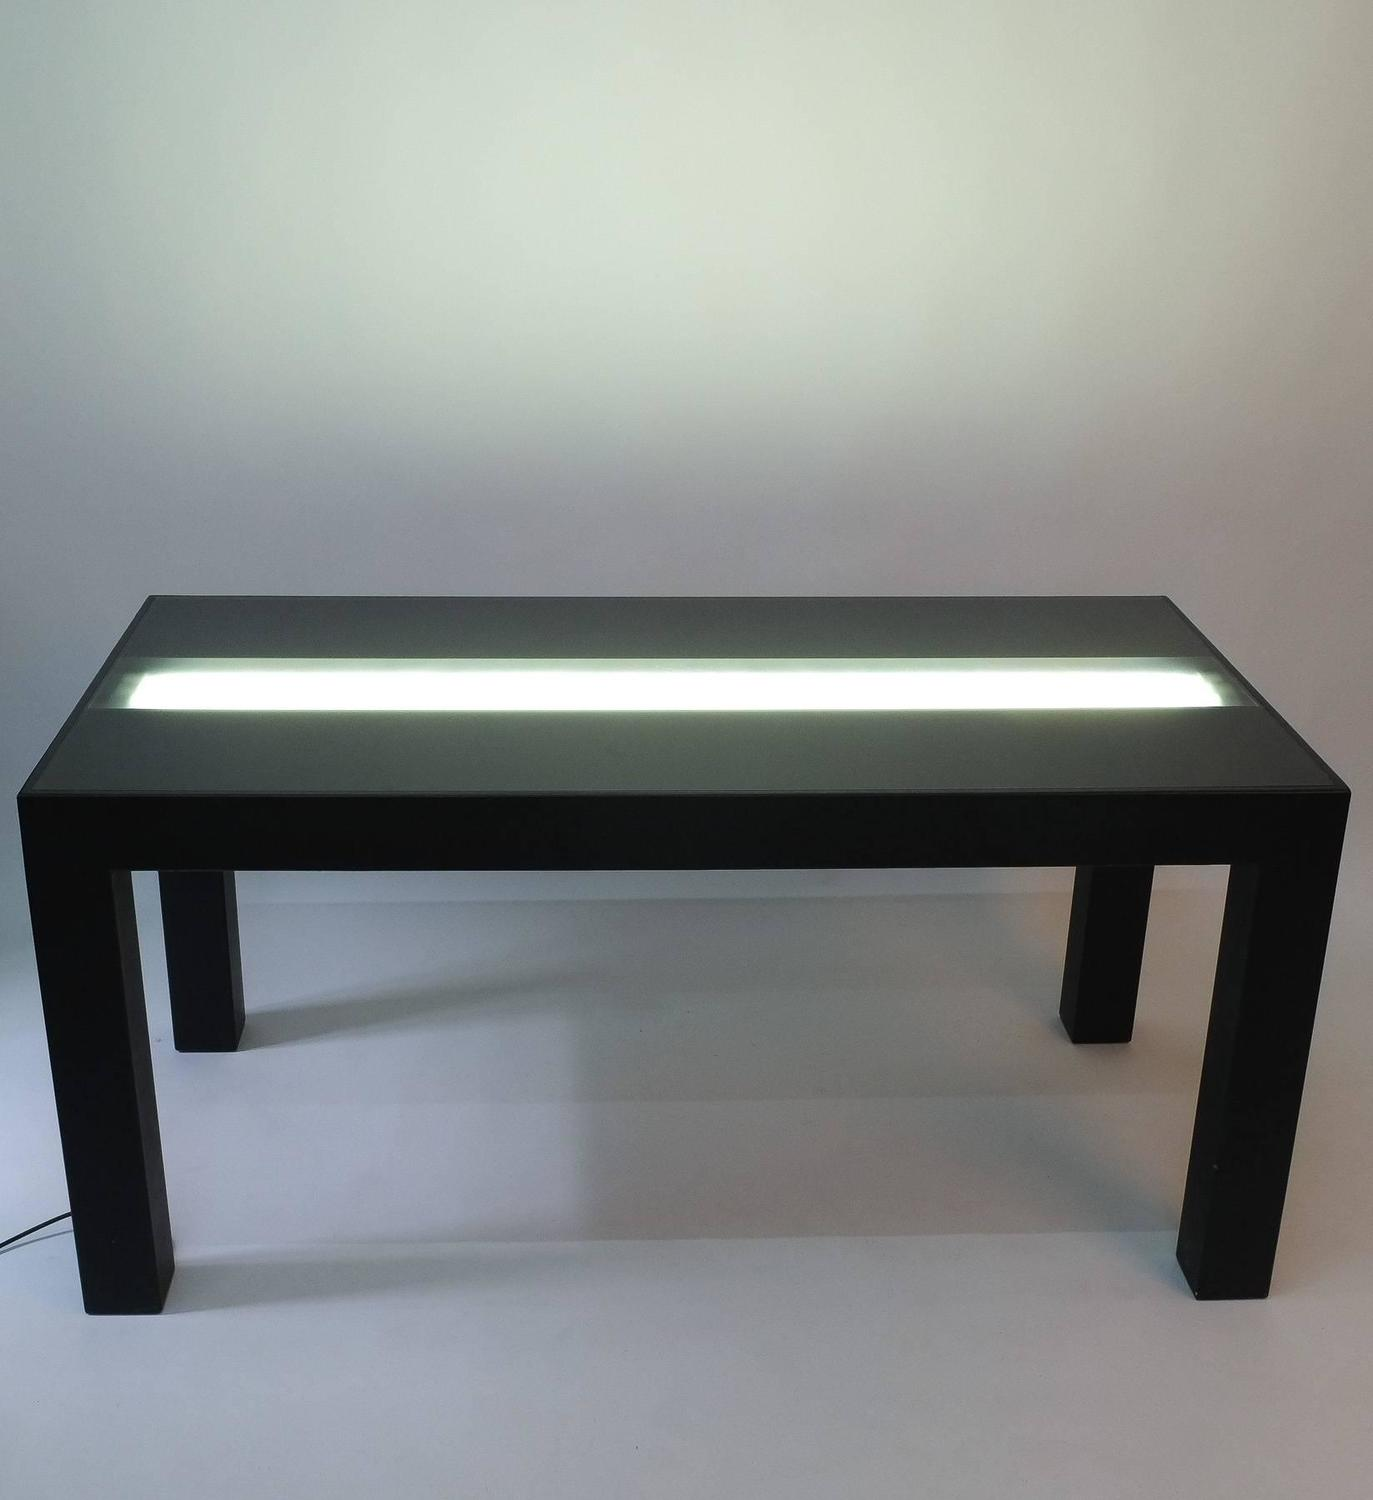 Illuminated Dining Table By Johanna Grawunder For Sale At